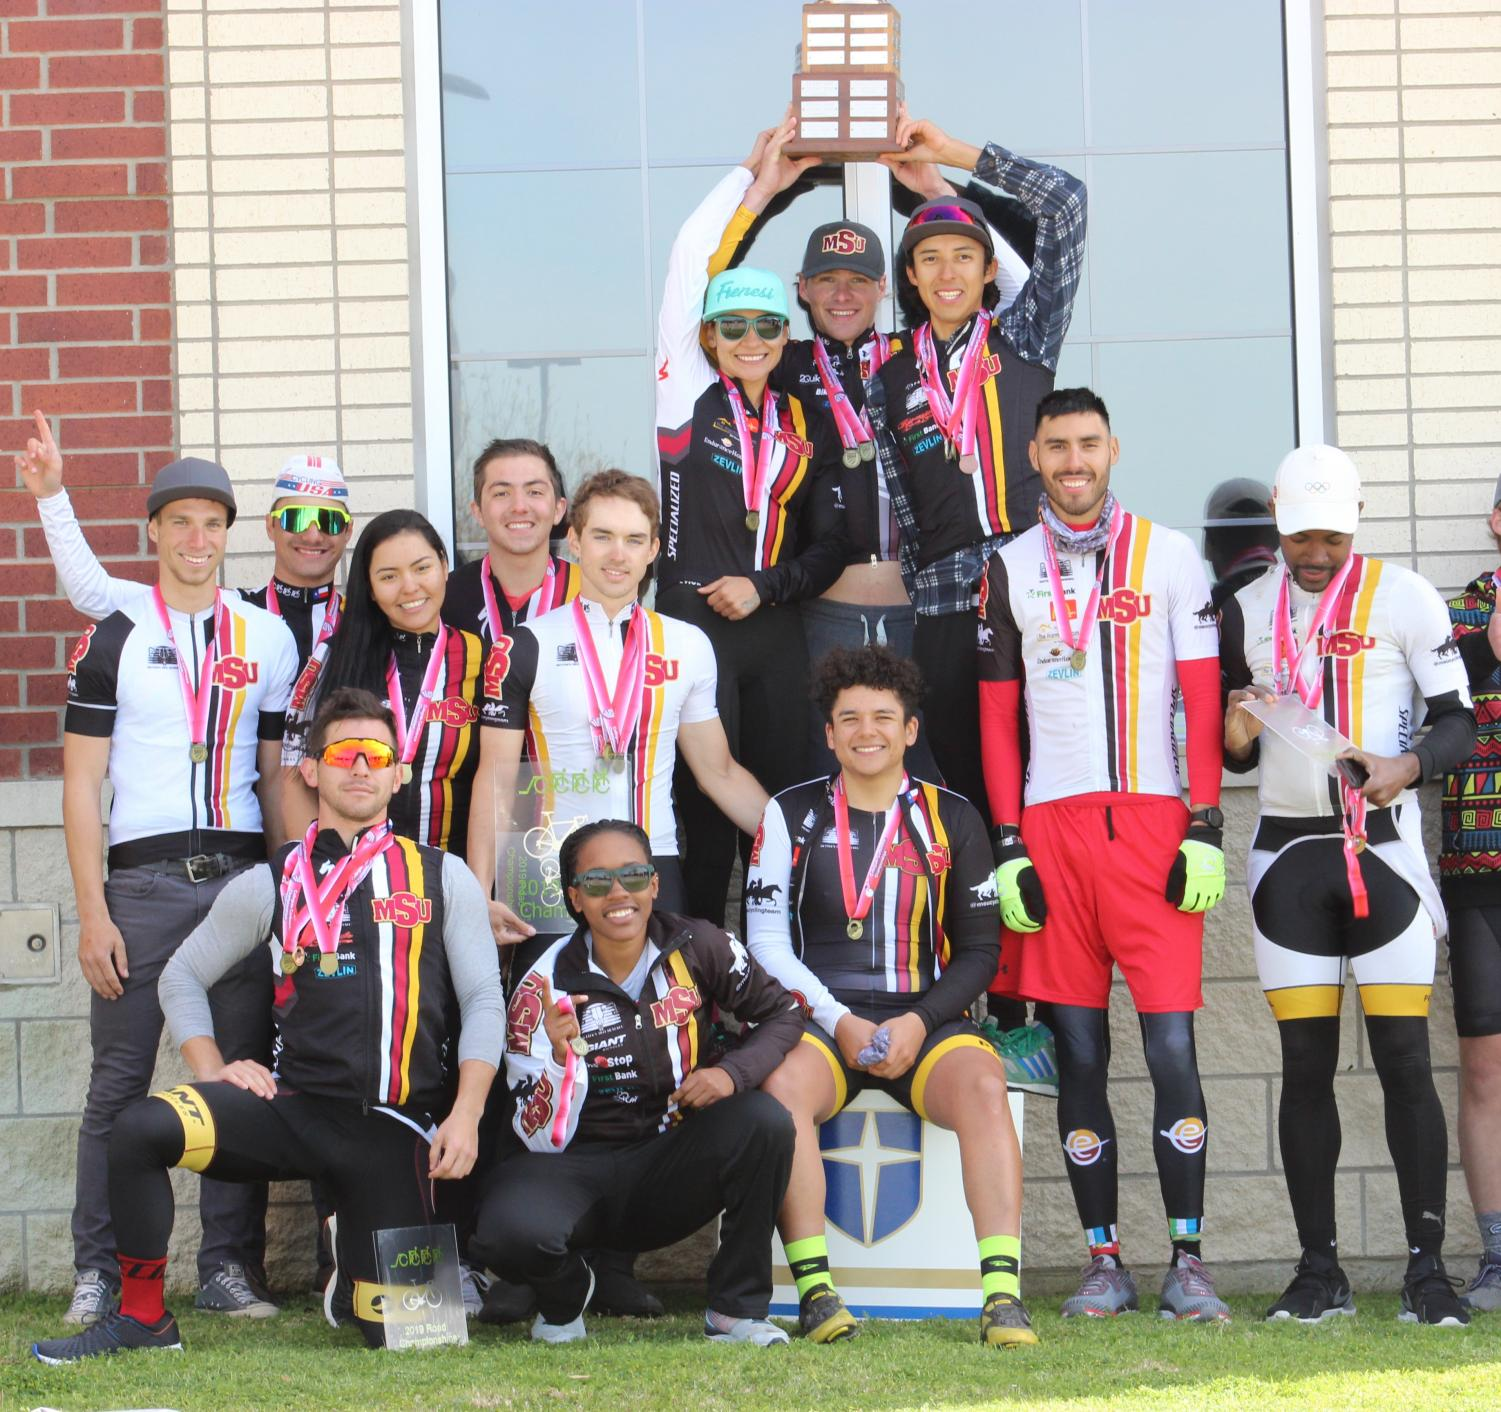 Cycling team celebrates 13th consecutive title at South Central Collegiate Cycling Championships. Photo by Charlie Zamastil. March 31.